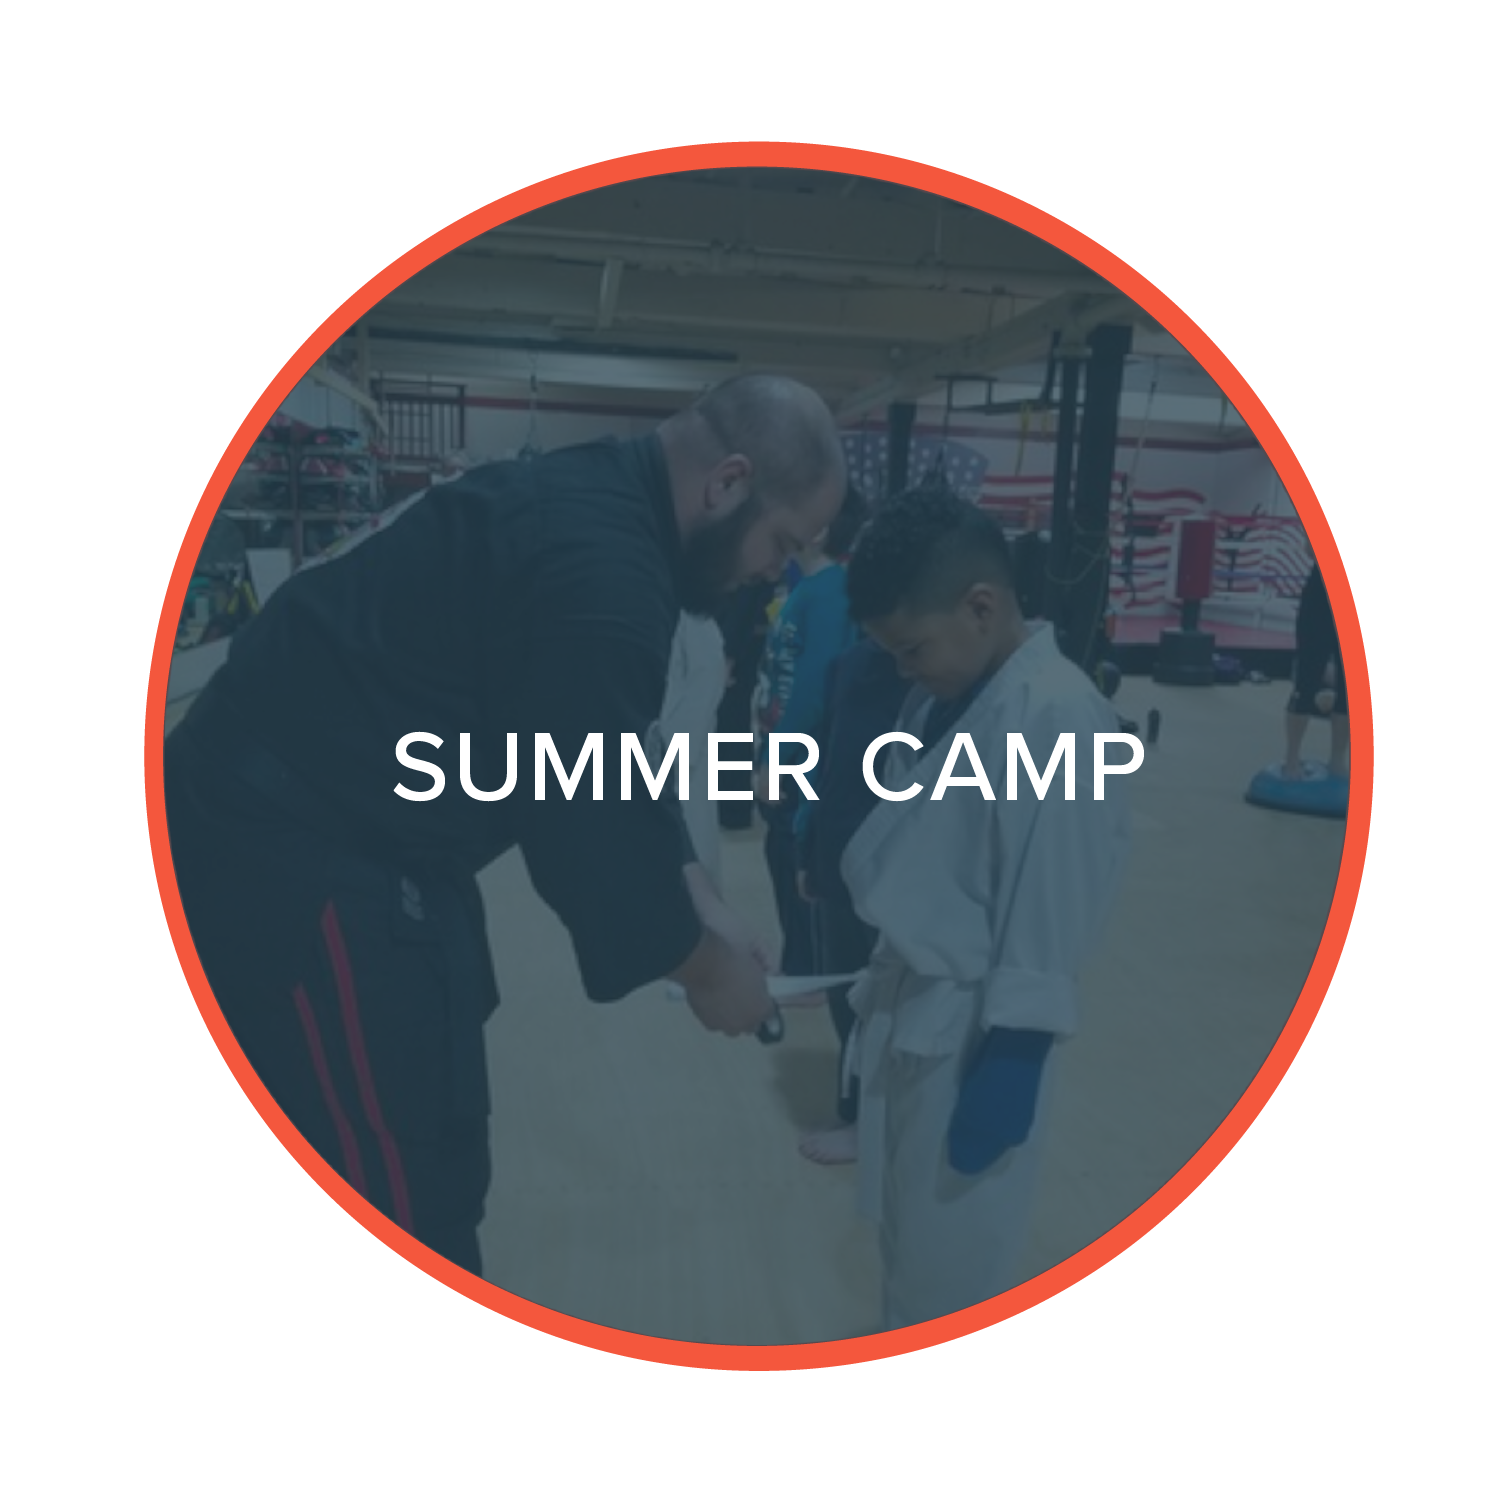 Are you looking for engaging, active summer experience for your camper? With various obstacle courses and Martial Arts Games, each day of our one-week summer camp is a unique and thrilling experience! The safety and enjoyment of your camper is the top priority of Master Instructor, Terry Dow, who has 25+ years of teaching experience with children. If your child finds a passion for Martial Arts, he or she is welcome to come back for more. All campers will receive a free 2 Week Trial VIP Card to come back and try out our regular classes!